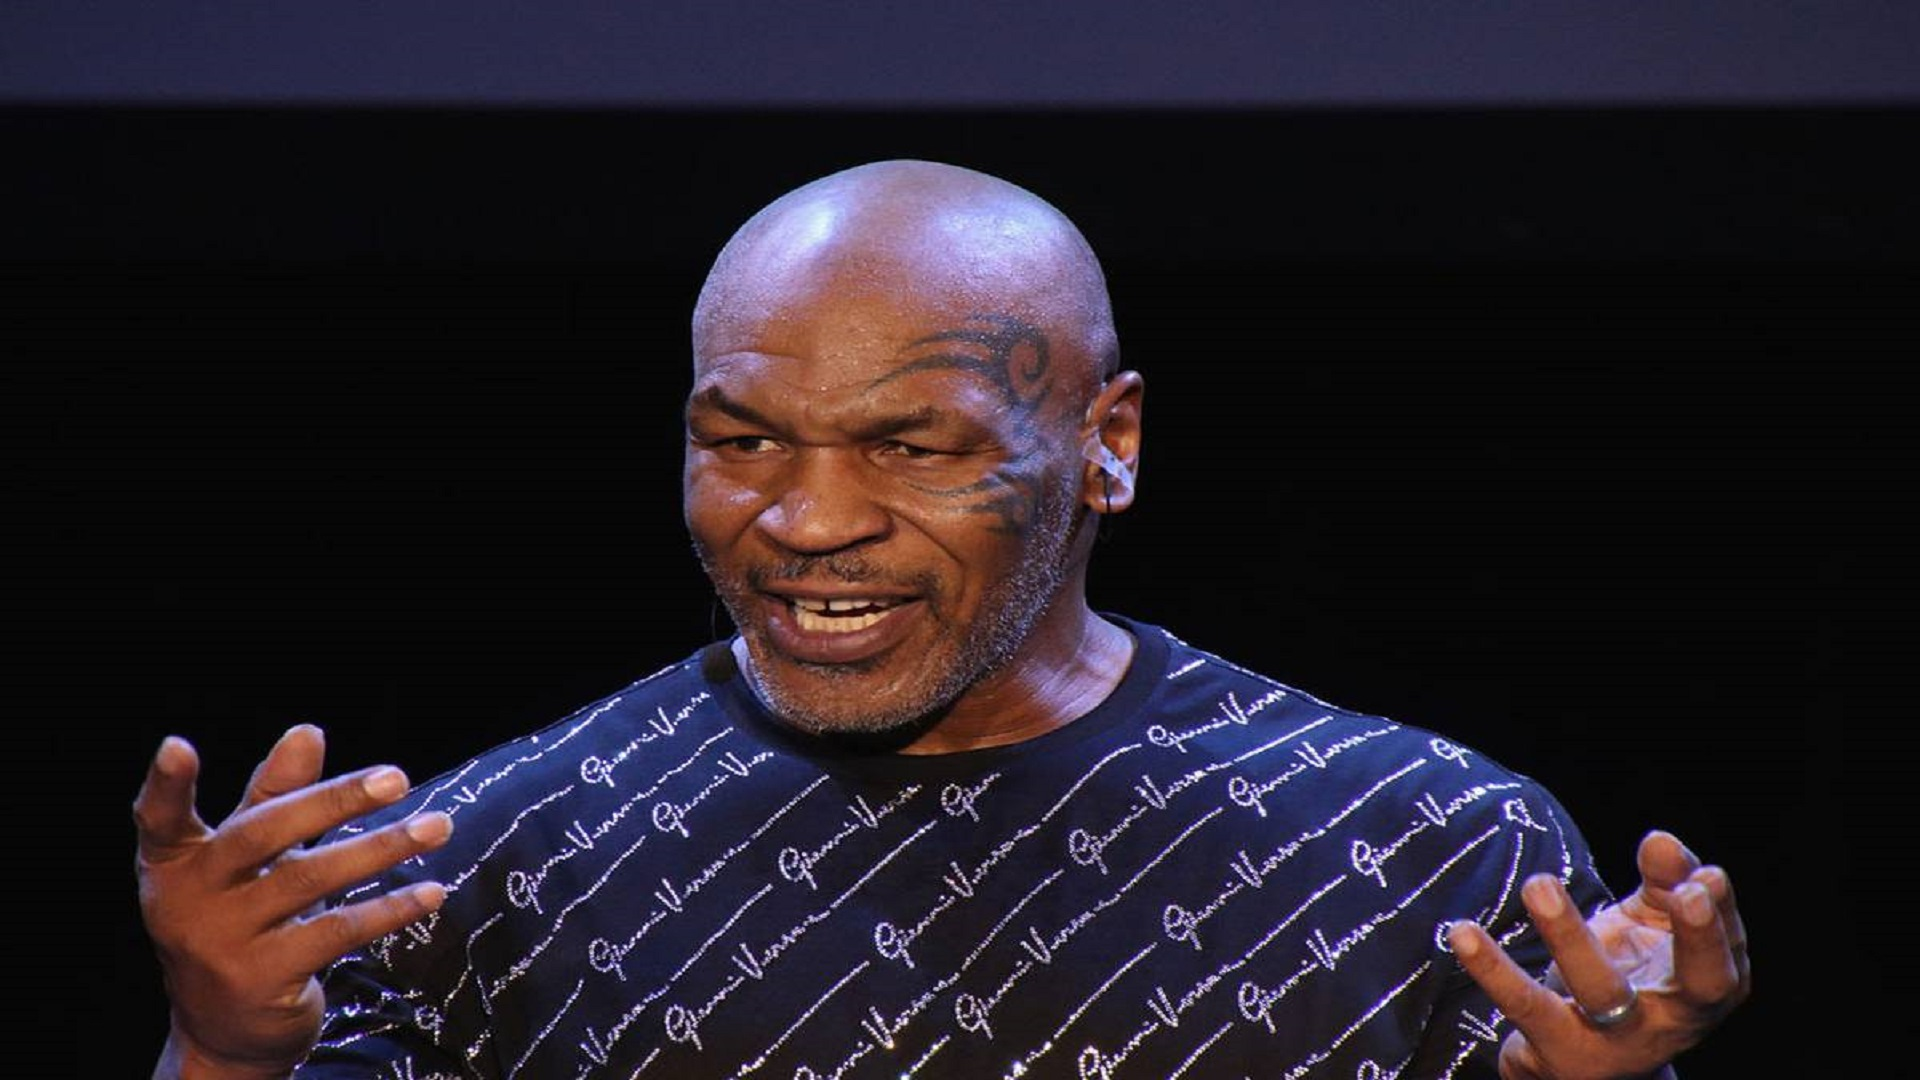 Mike-Tyson-Boxing-MMA-Earning